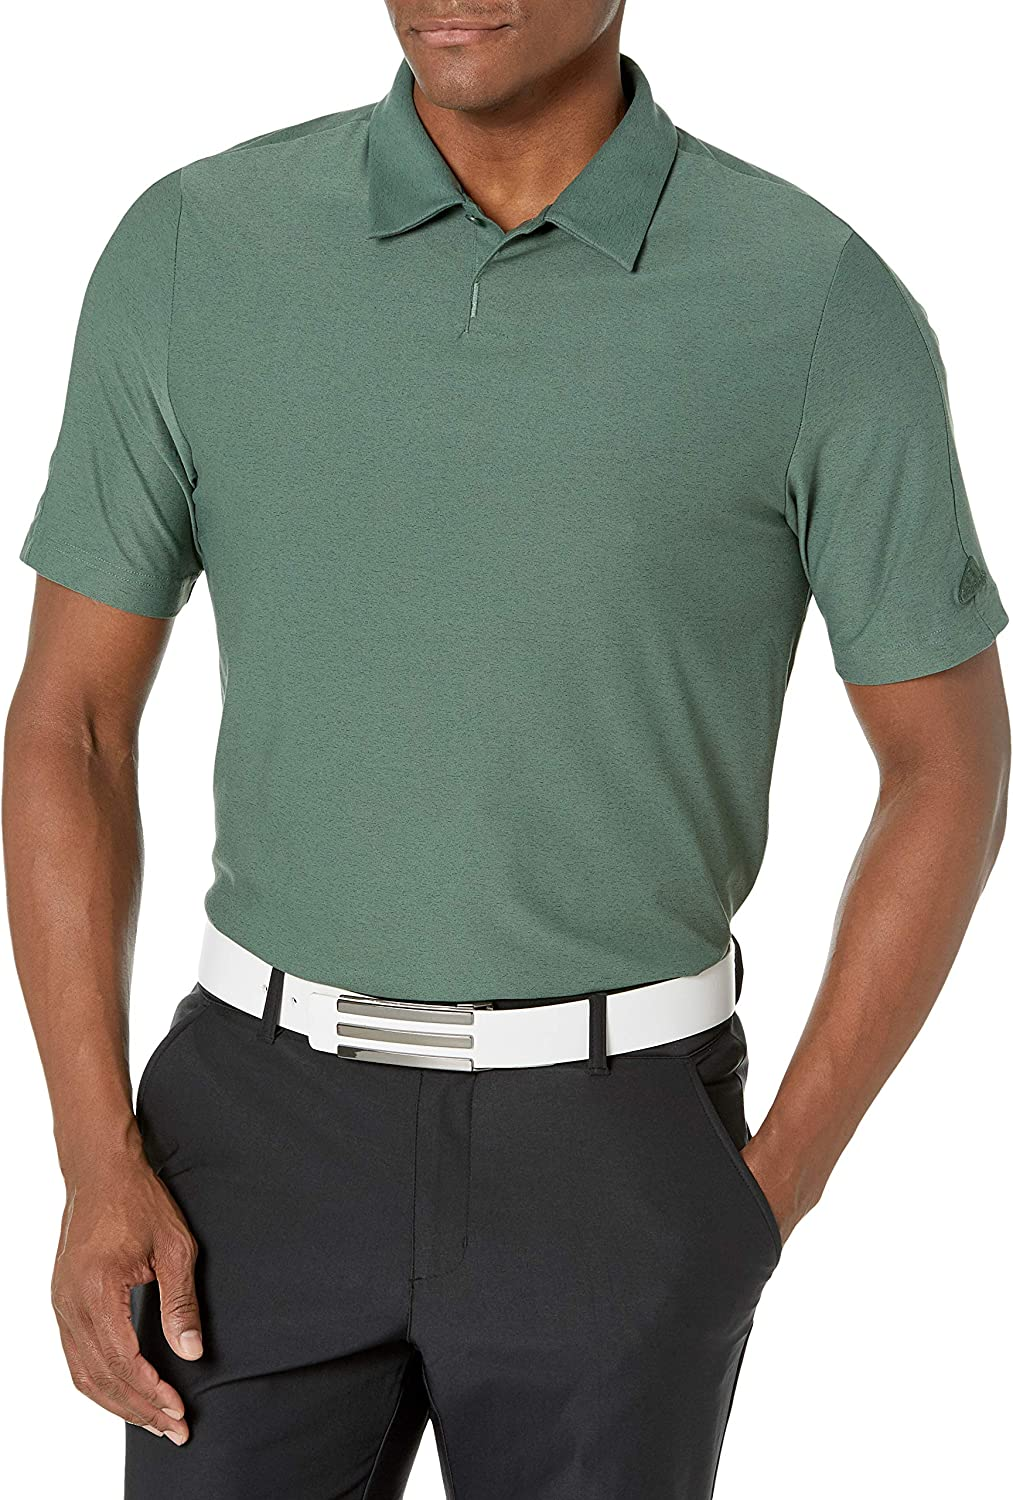 adidas Men's Go-to Primegreen Polo Shirt